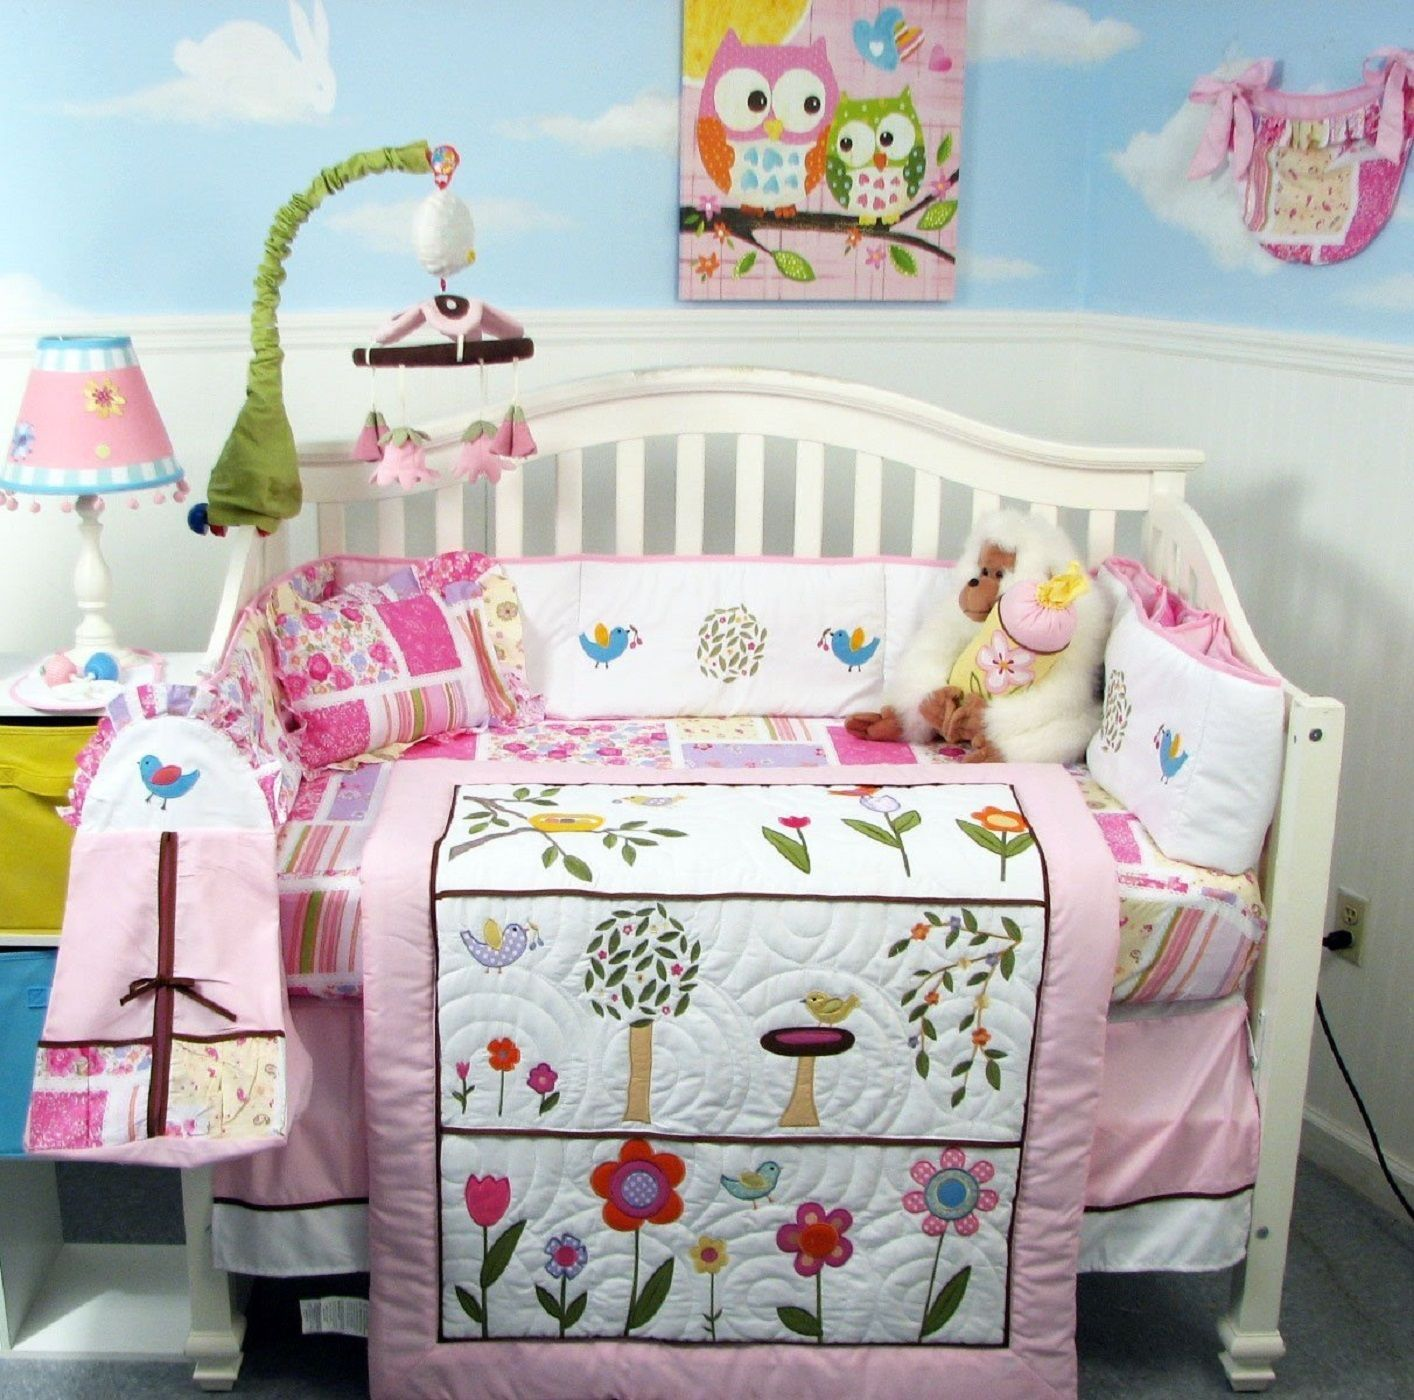 PINK CRIB BEDDING SET FLOWER GARDEN Infant Baby Girl Nursery 13 Pc Q